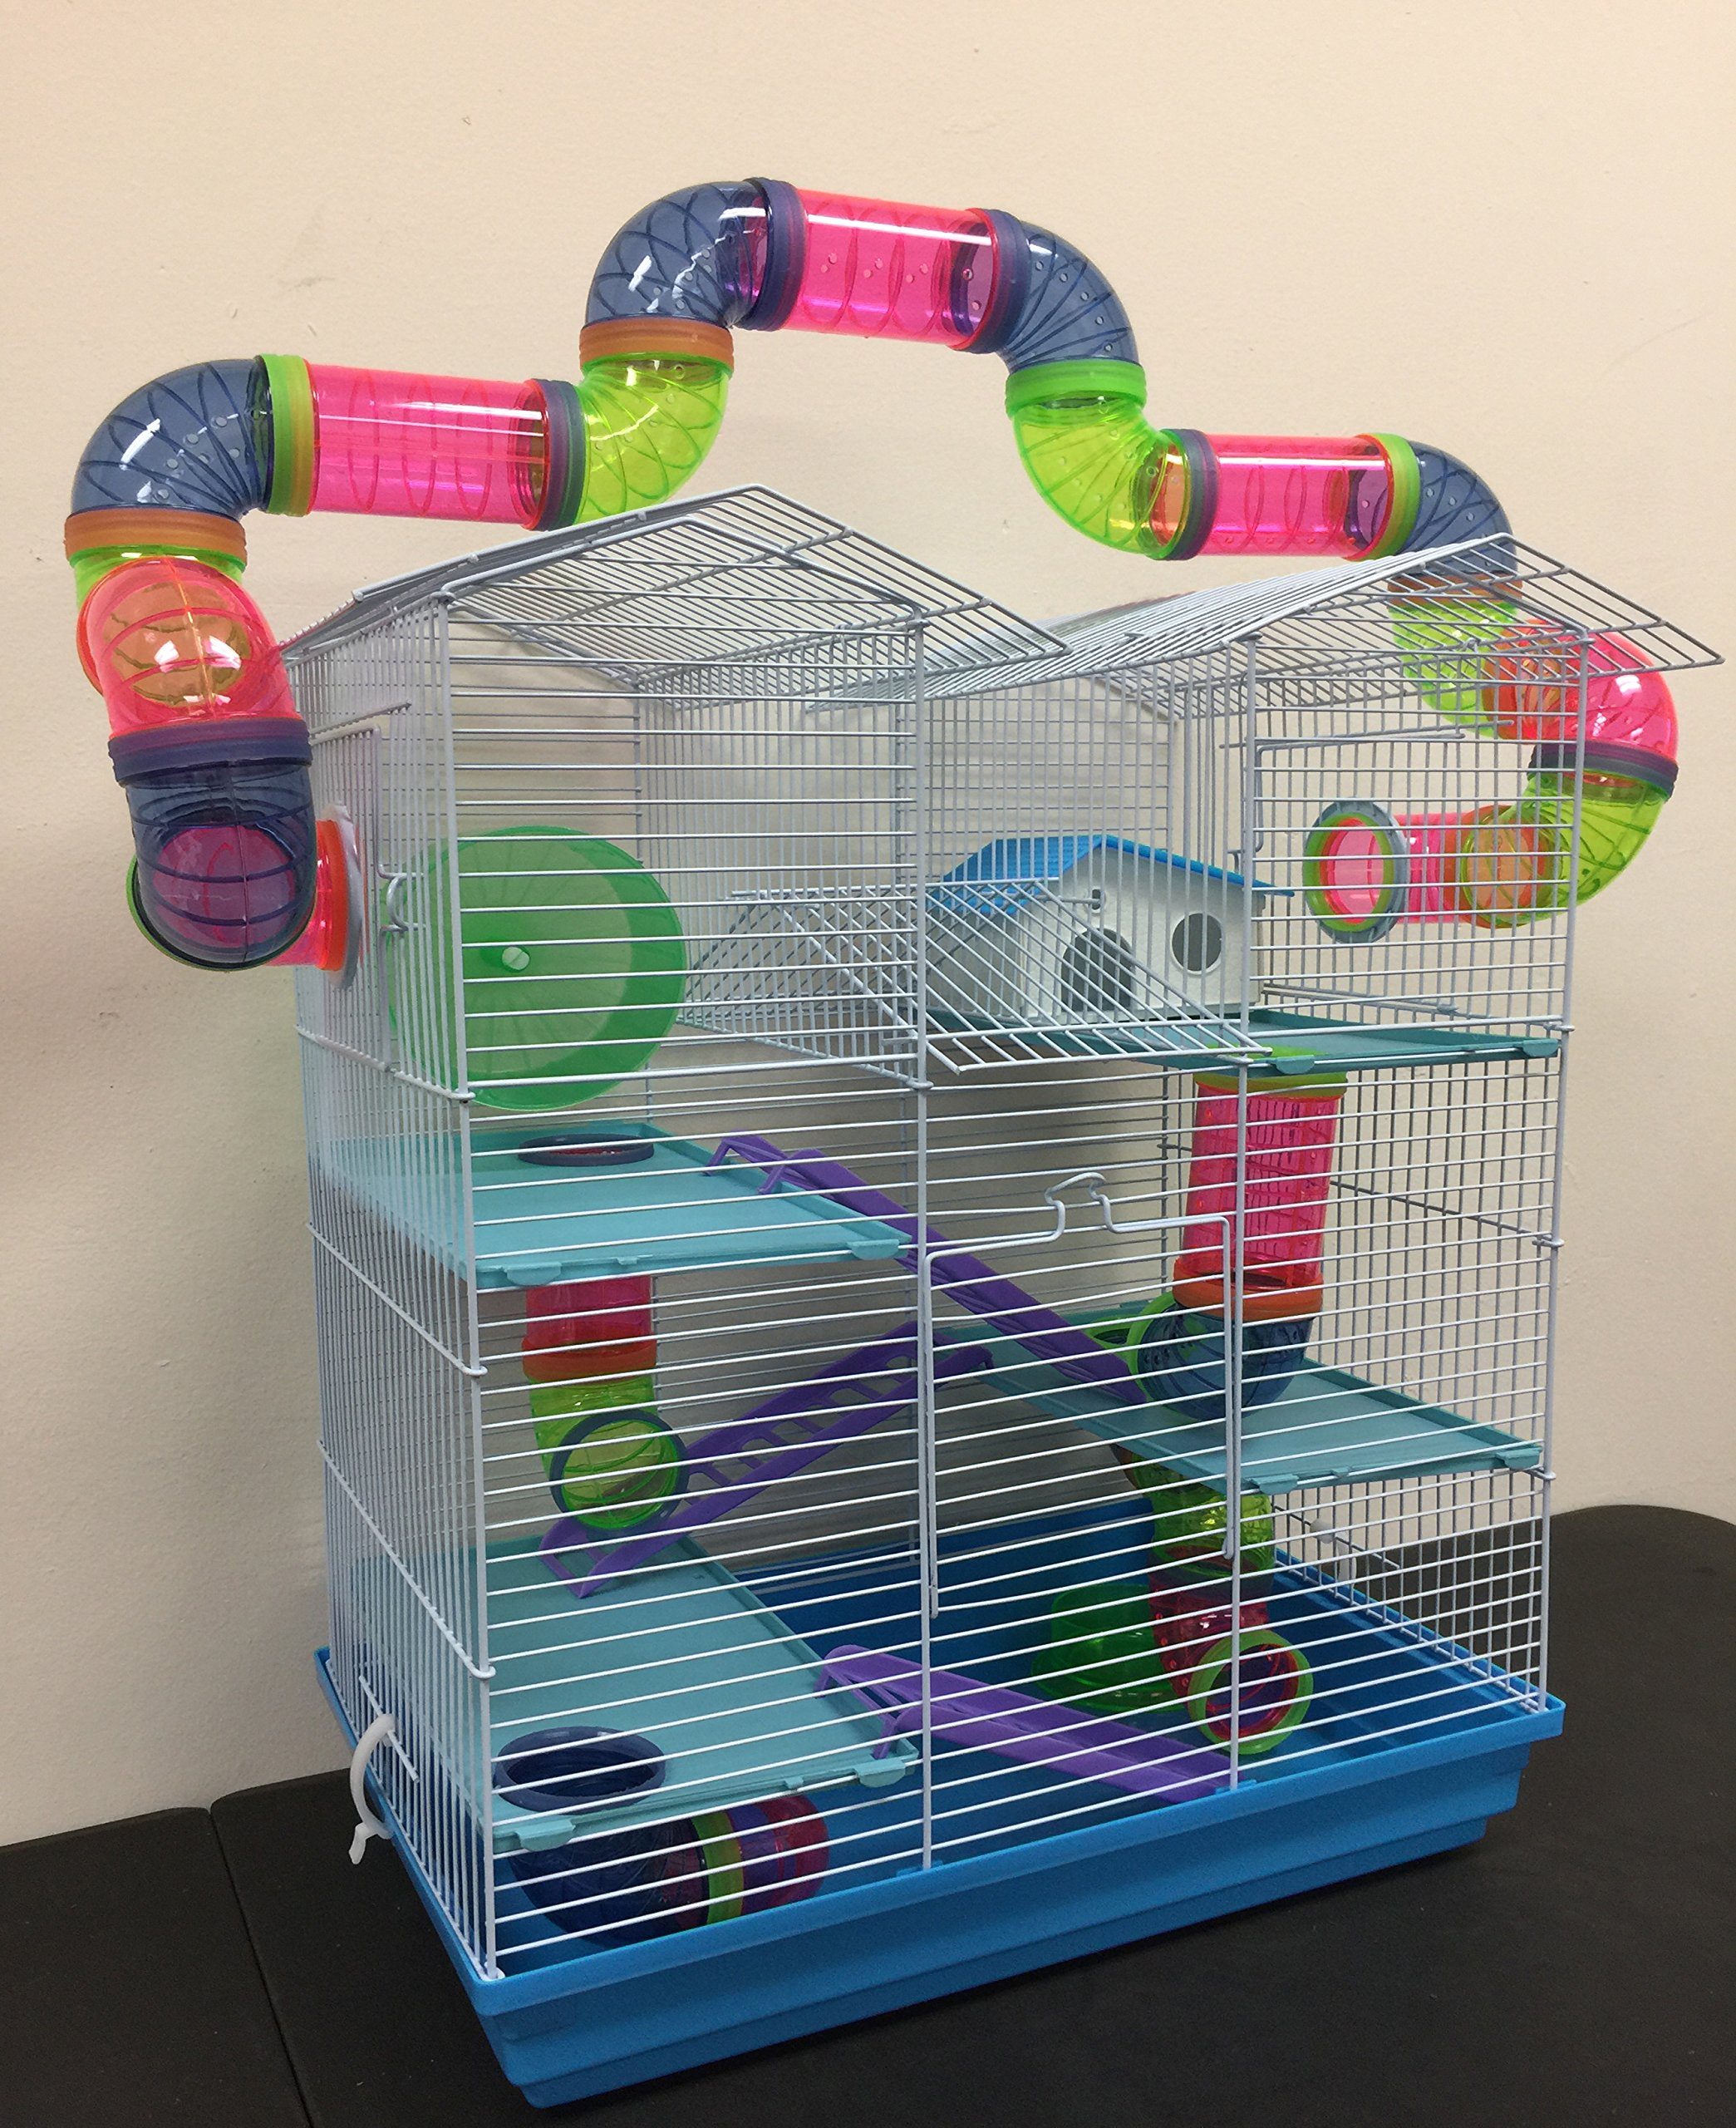 5 Level Large Cross Twin Tower Tube Tunnel Habitat Hamster Rodent Gerbil Mouse Mice Rat Cage (Blue) by Mcage